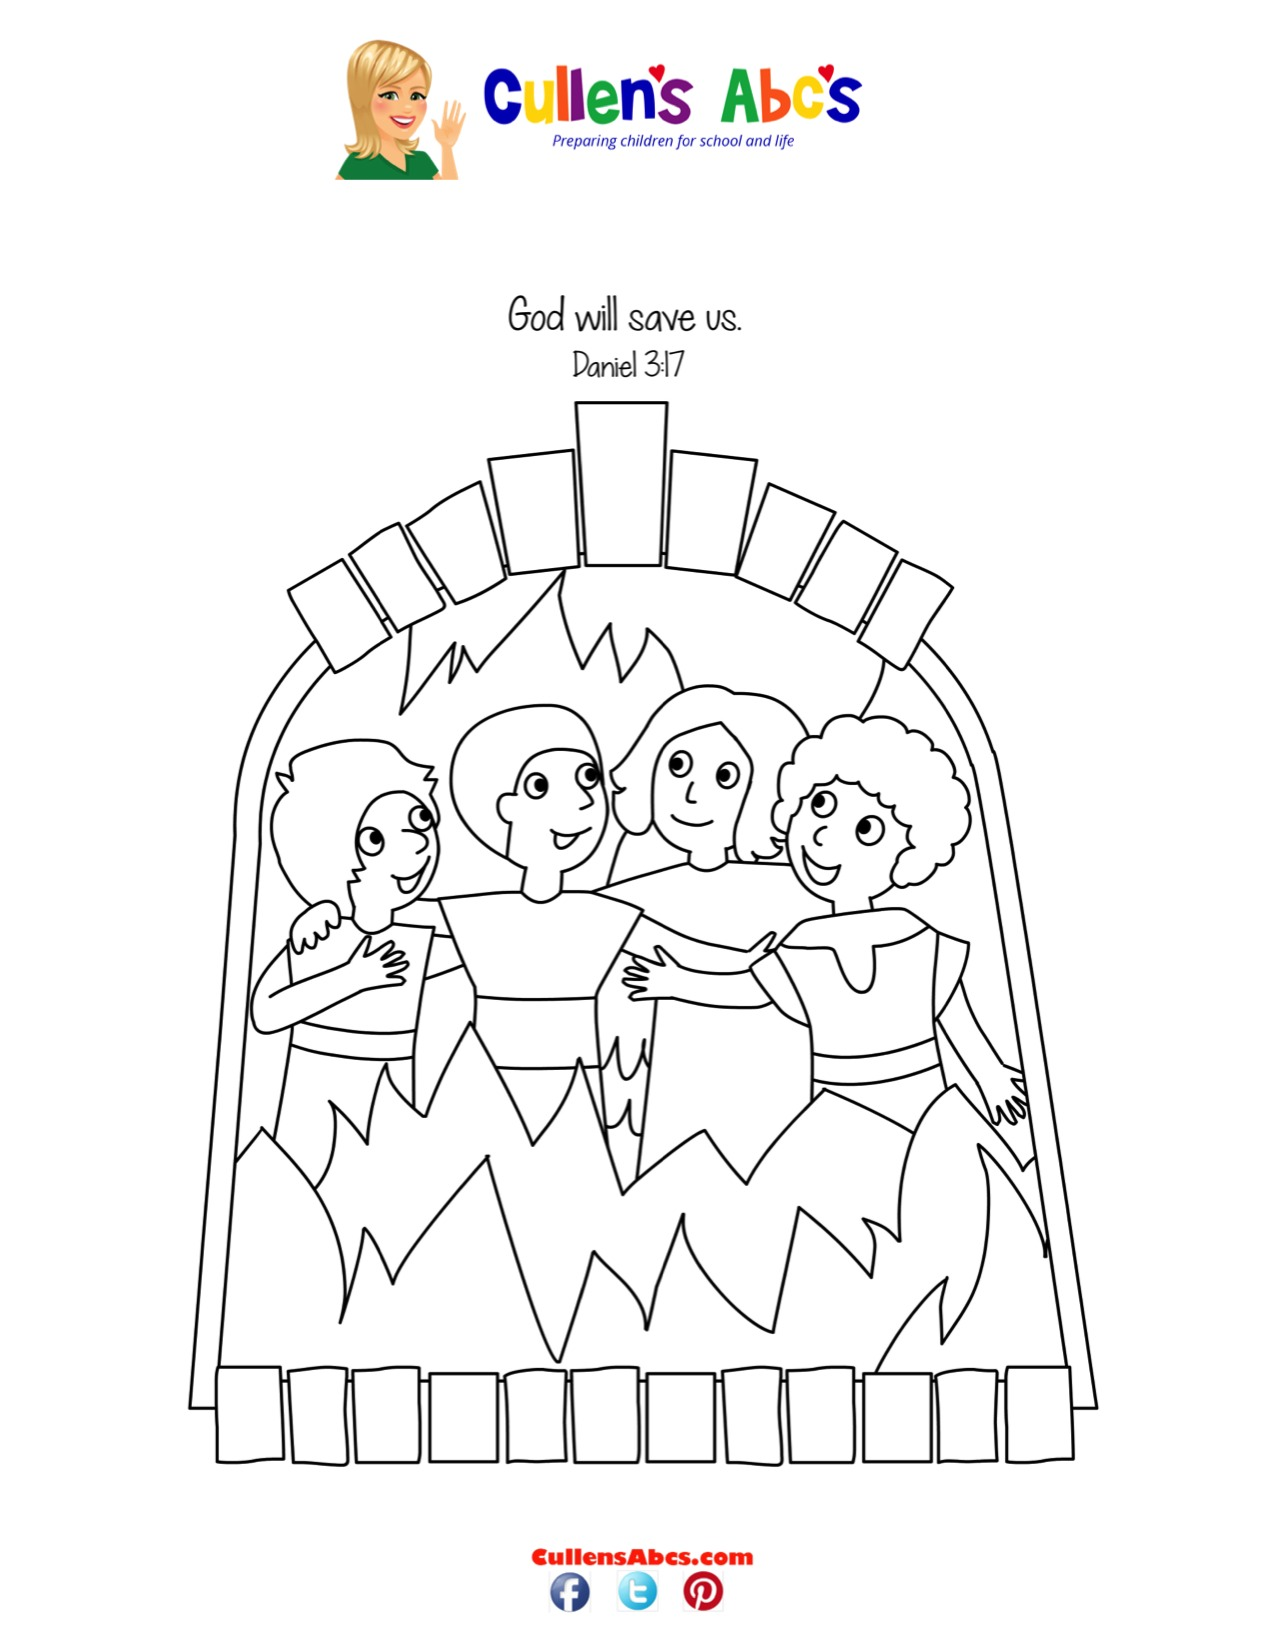 Shadrach, Meshach and Abednego Coloring Sheet